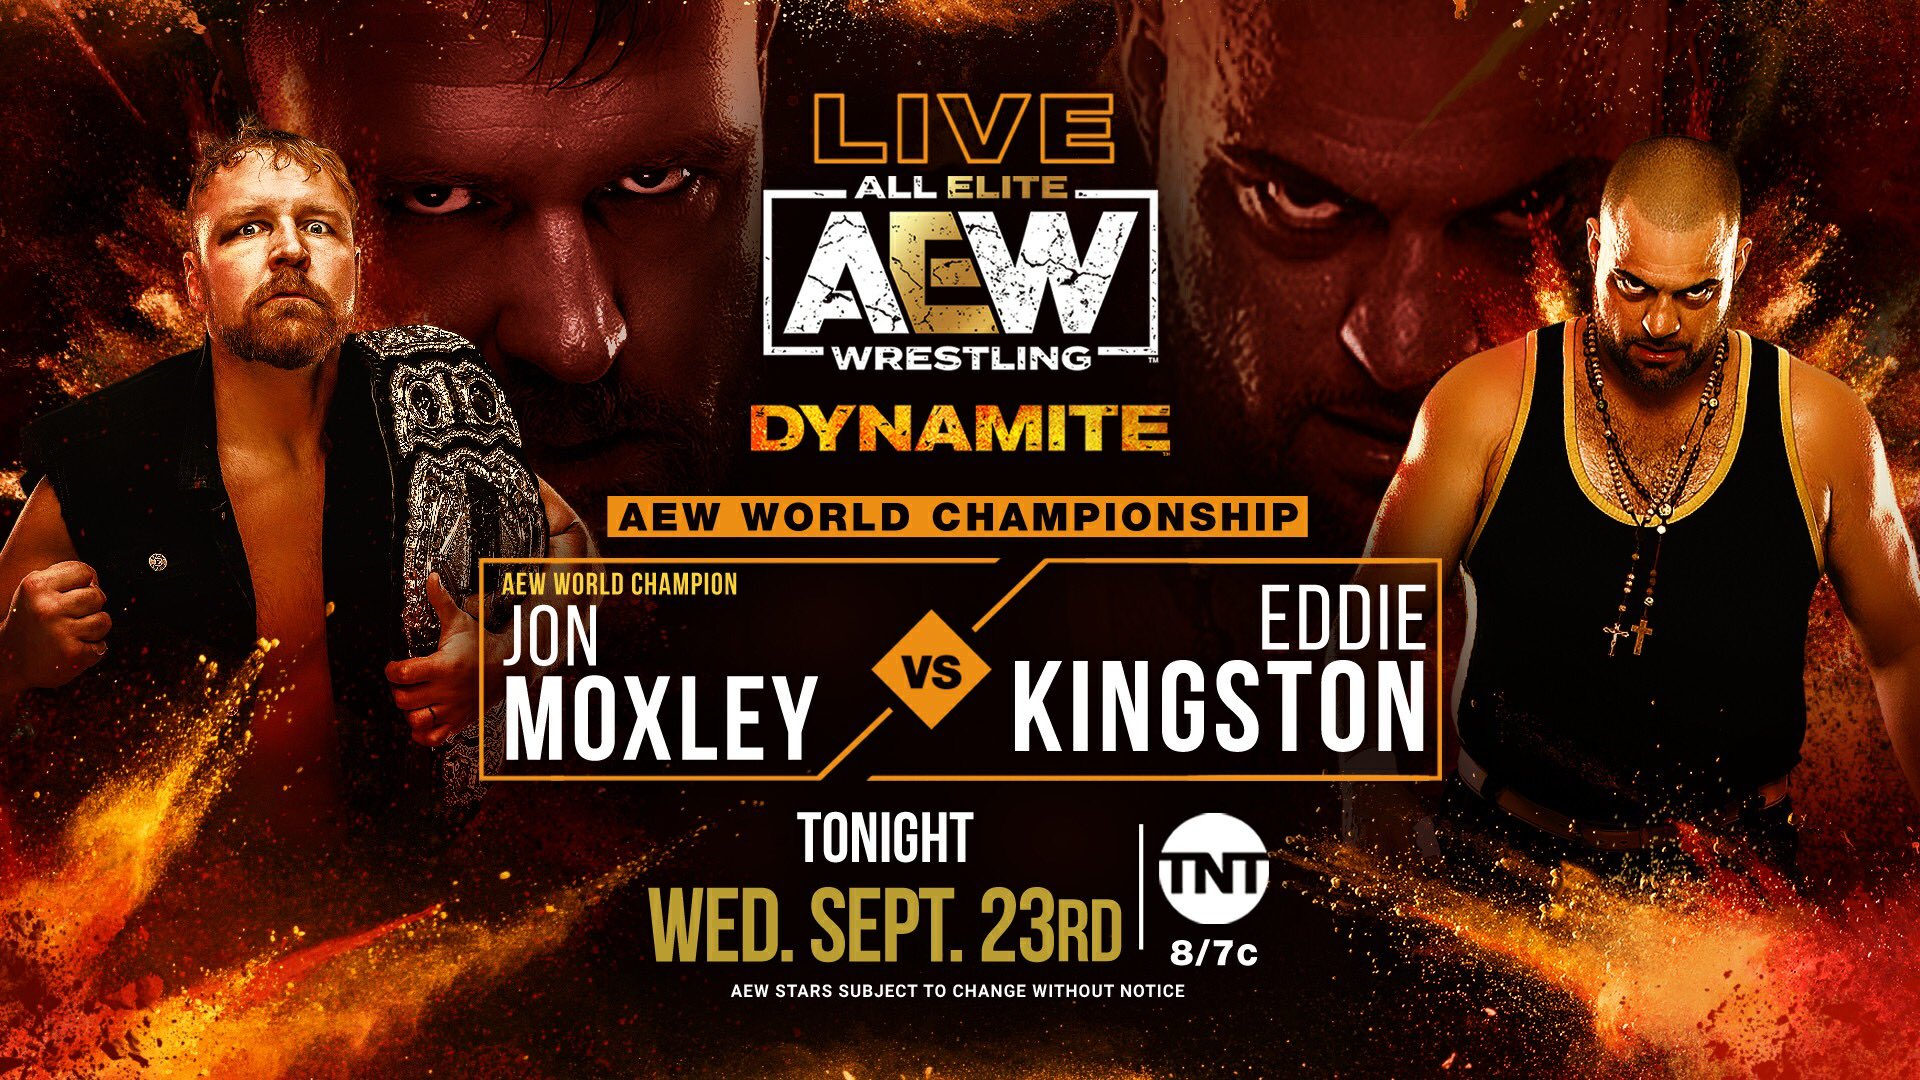 Lance Archer has COVID; Moxley will instead defend AEW Championship